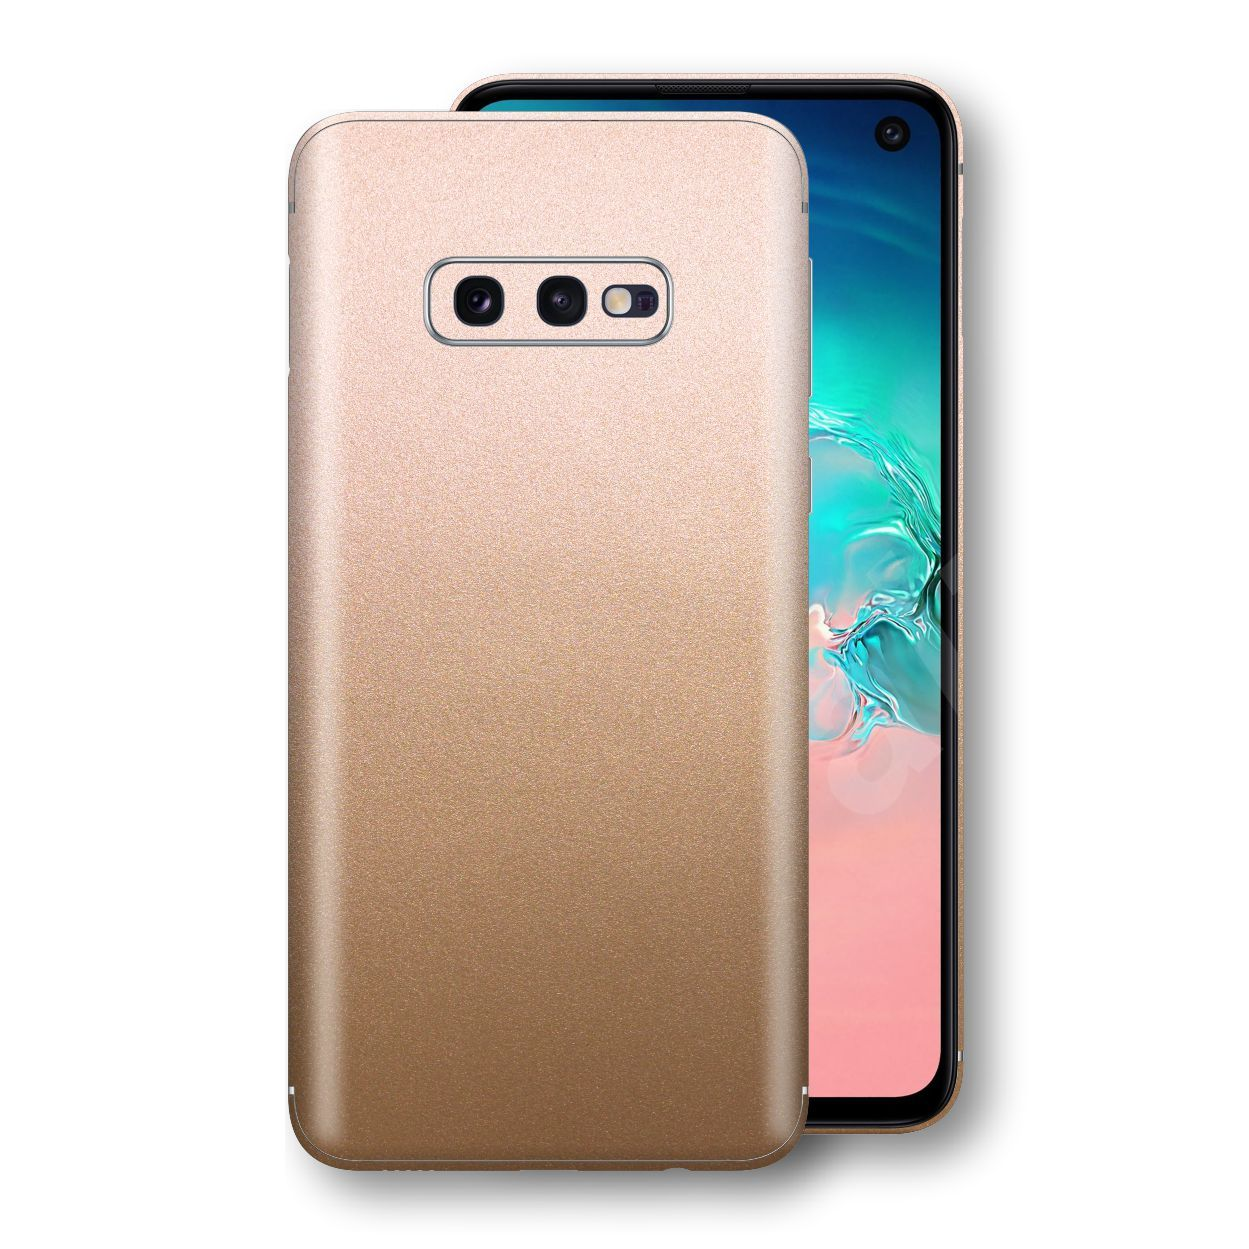 Samsung Galaxy S10e Luxuria Rose Gold Metallic Skin Wrap Decal Protector | EasySkinz